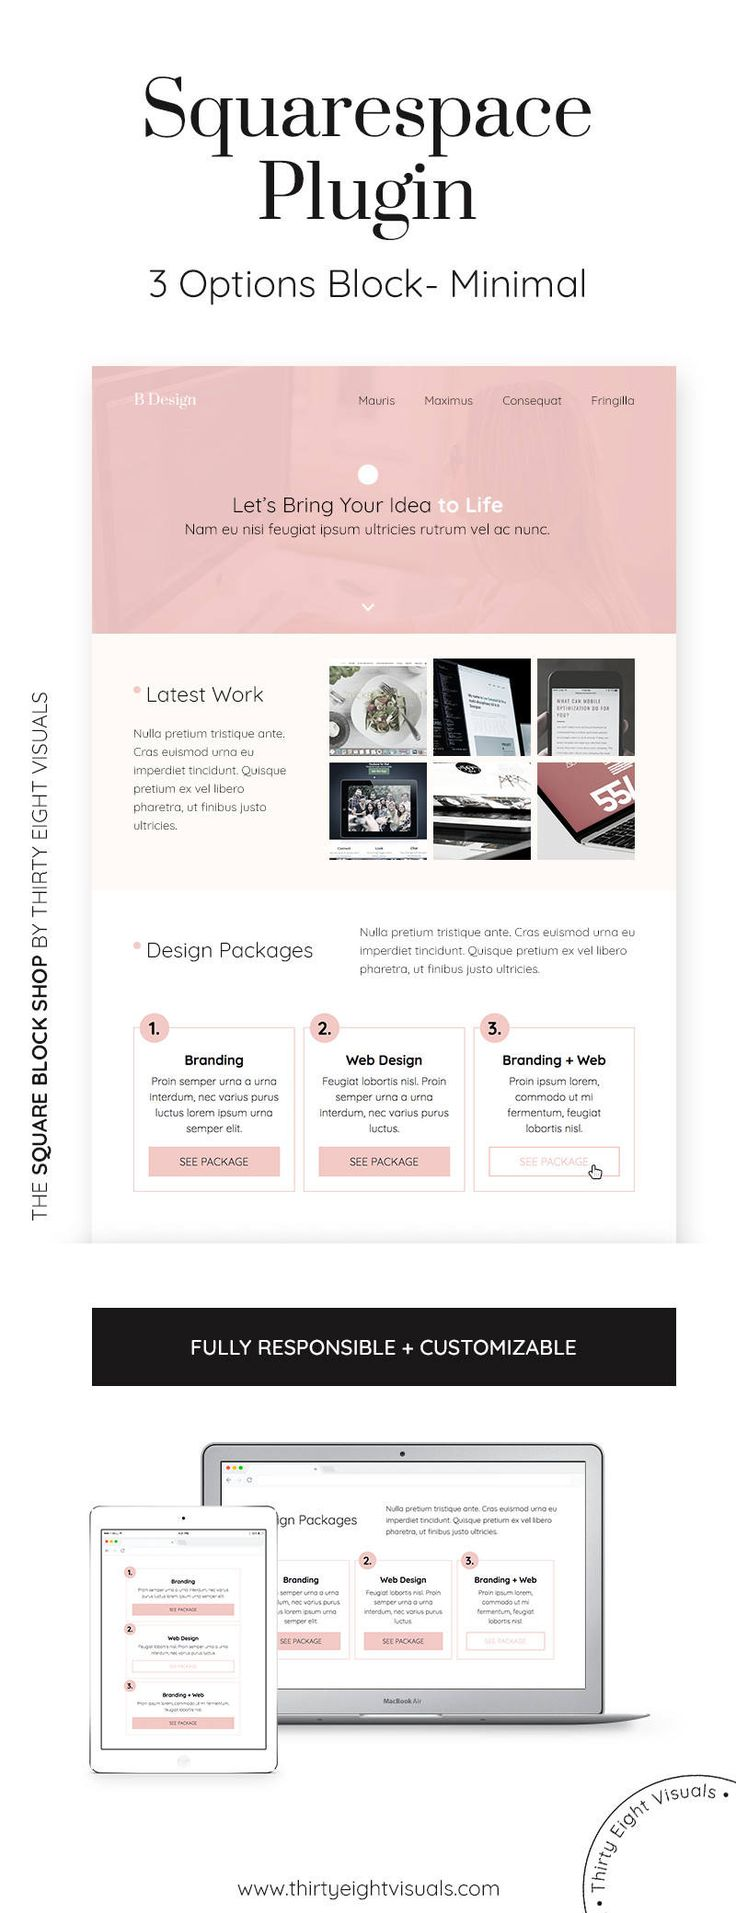 Squarespace plugin - Show your different service packages with this custom responsive block with animation. Its the perfect way to make your Squarespace site memorable! Take a look.